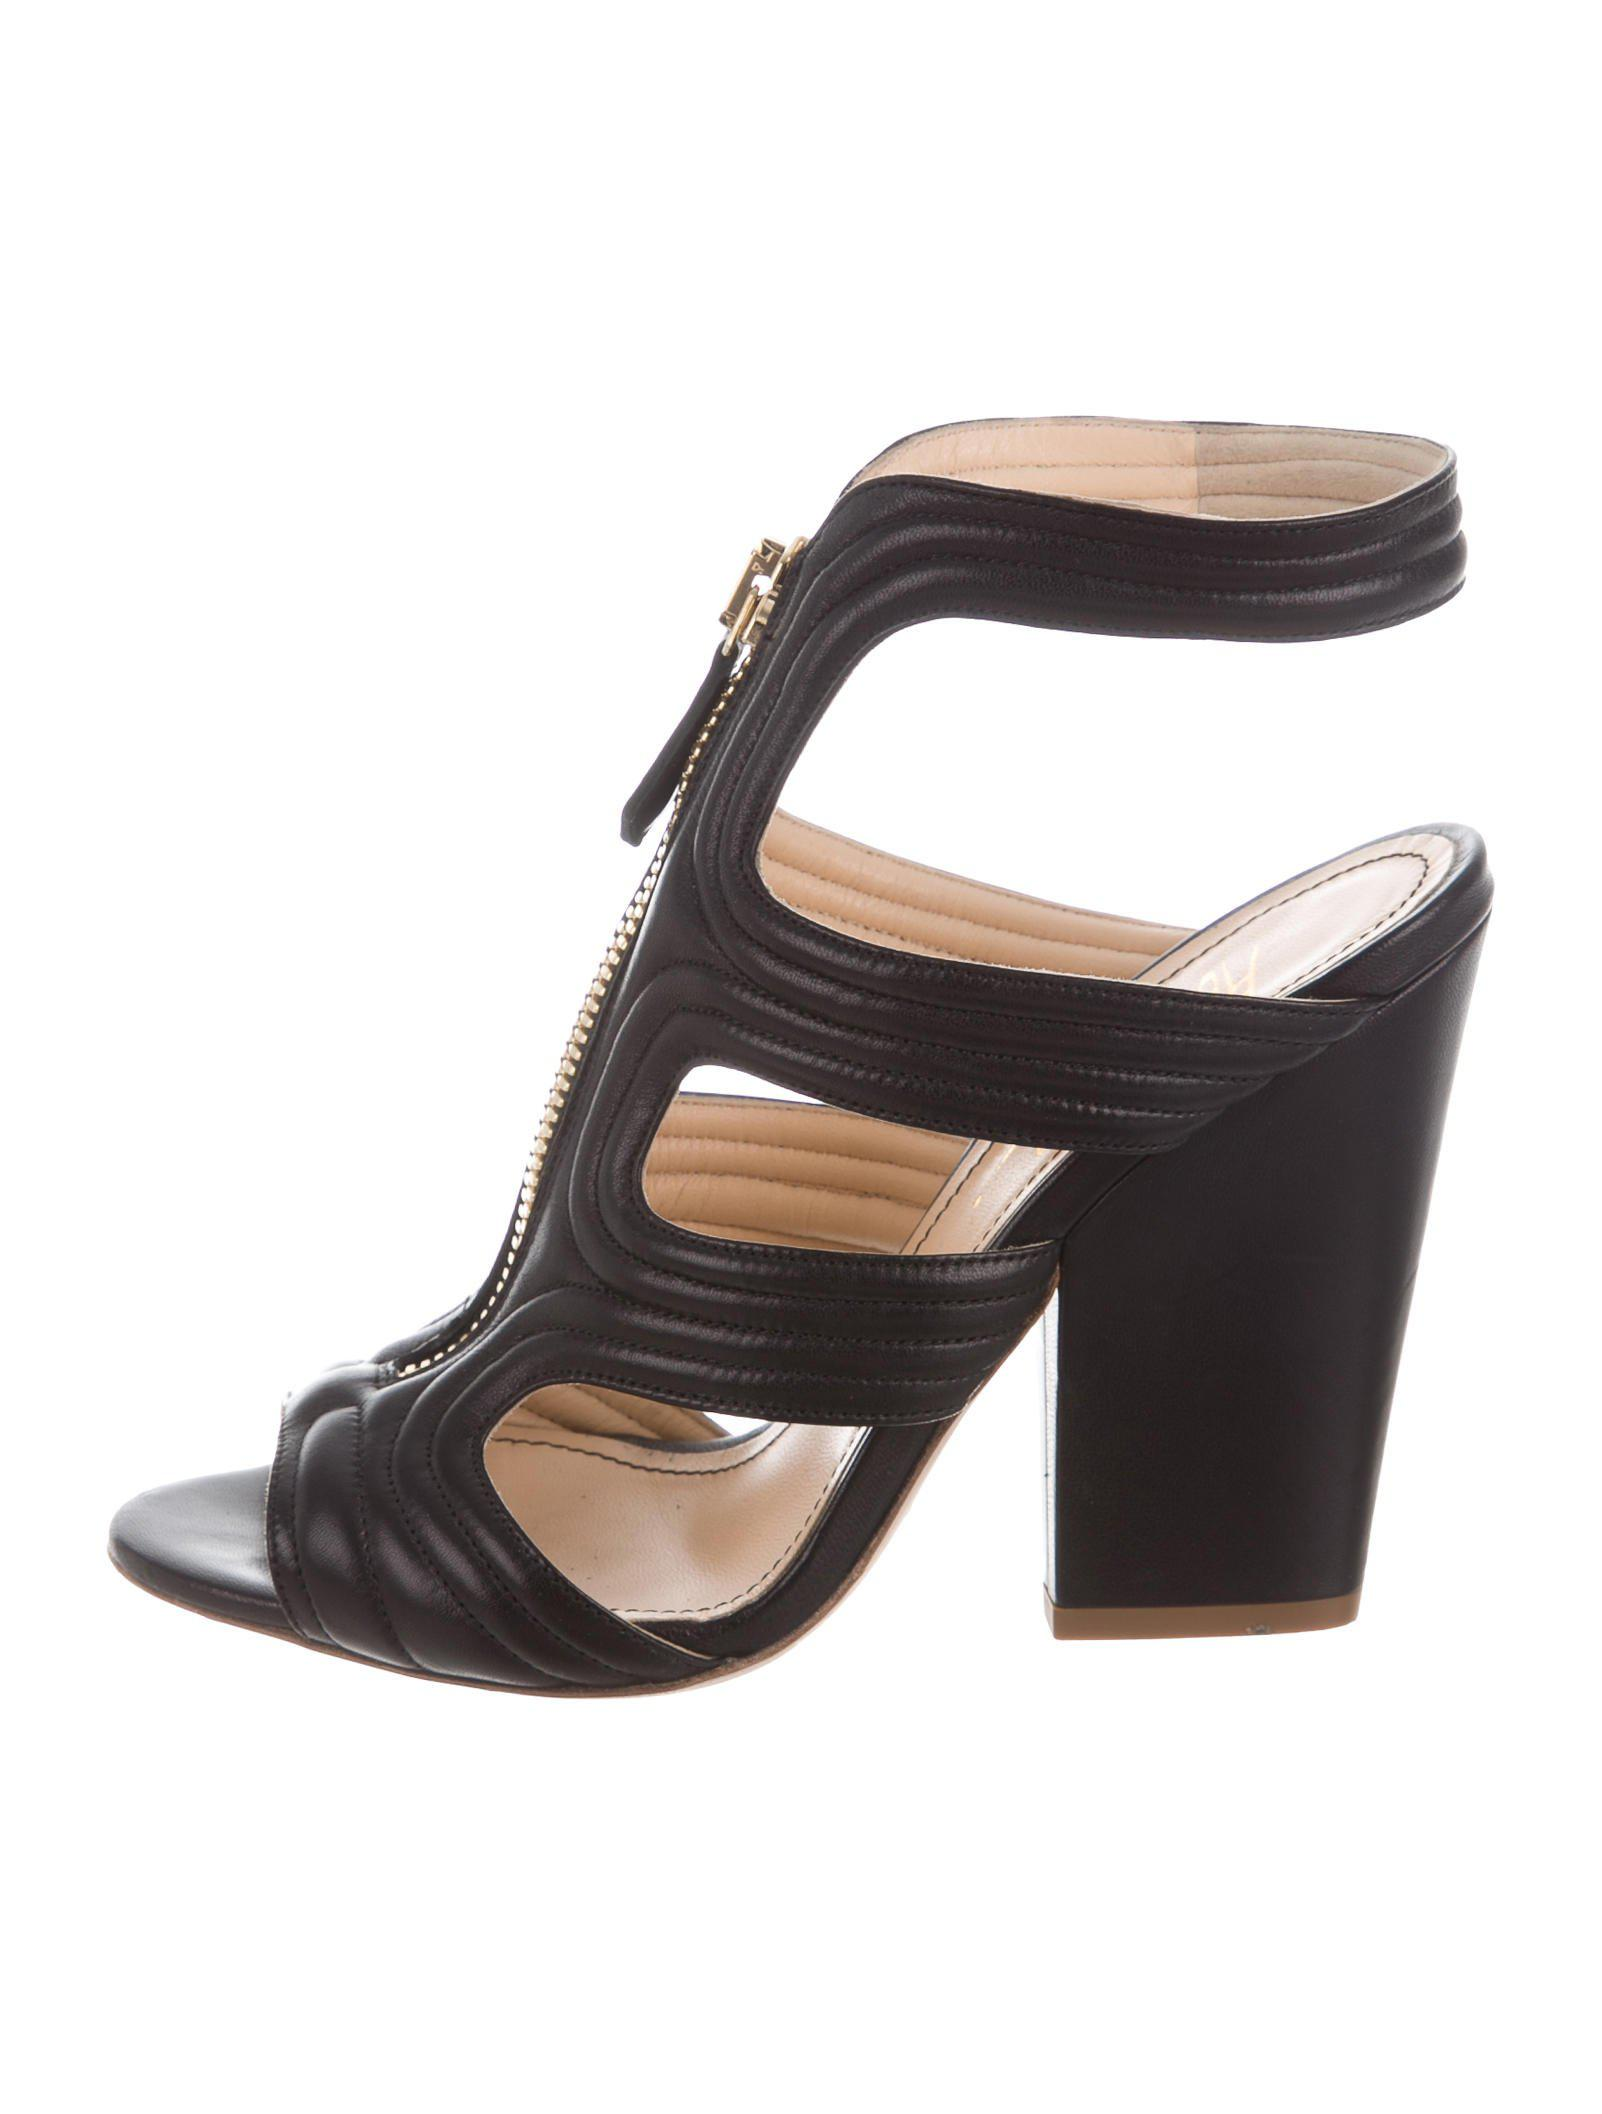 tumblr cheap price Jerome C. Rousseau Quilted Metallic Sandals 100% original cheap online sale limited edition buy online outlet fake x7S1v9vK7I